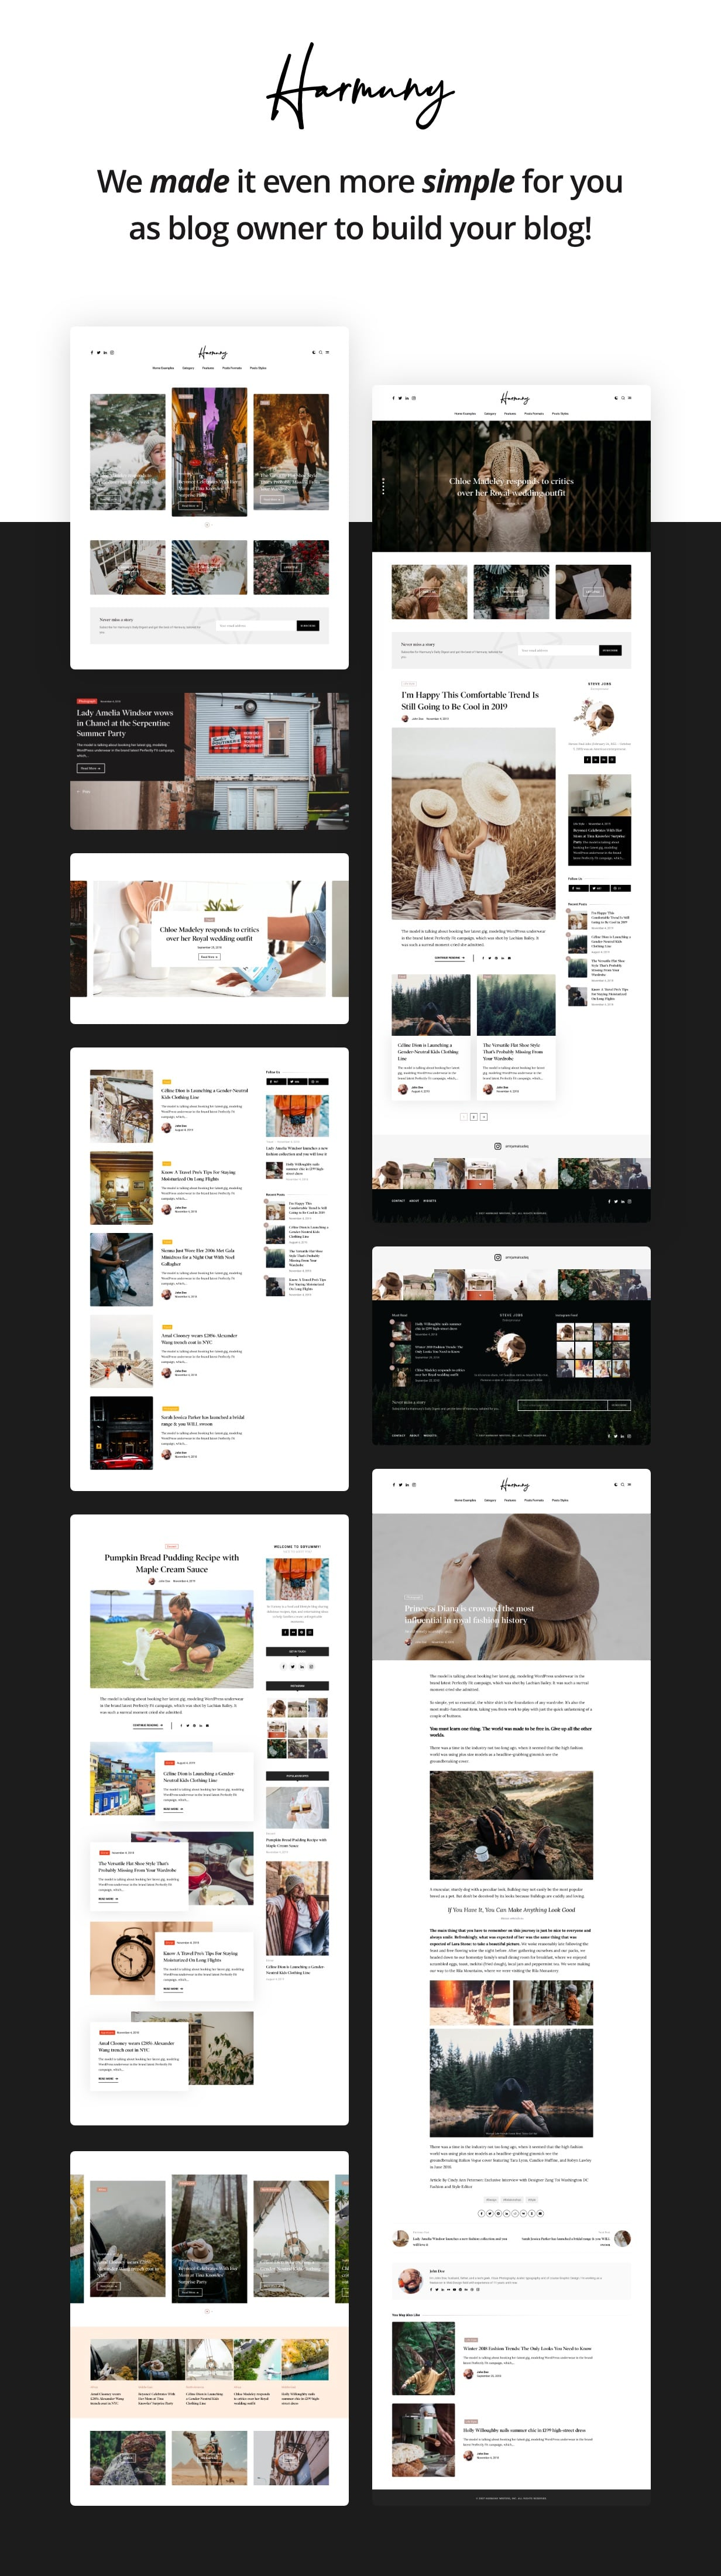 Harmuny — A Responsive WordPress Blog Theme - 2